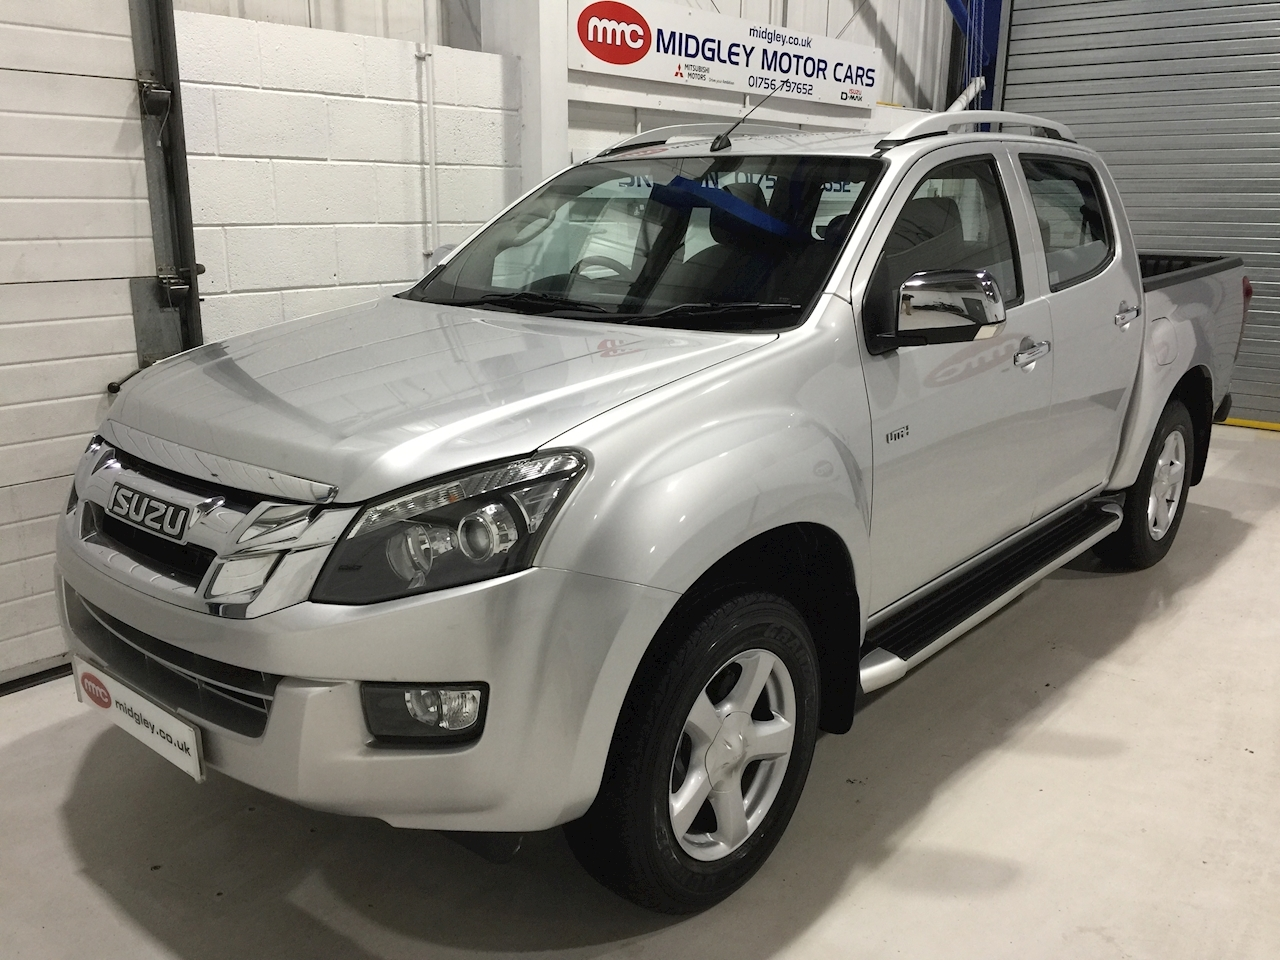 Isuzu D-Max Utah 2.5 4dr Double Cab Pickup Manual Diesel